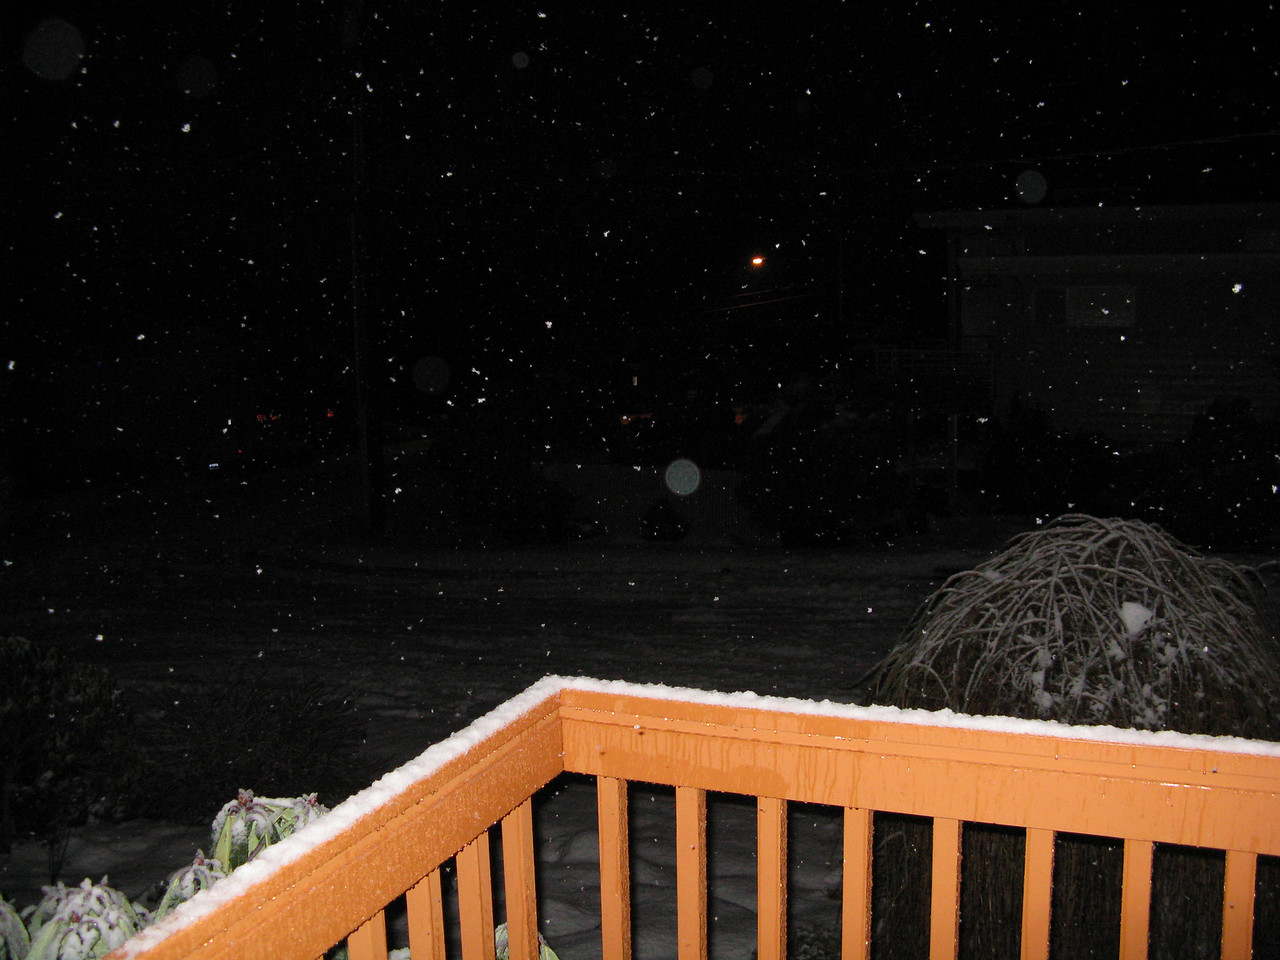 On Christmas morning, it was snowing again.  Christmas was the 13th day that we had snow on the ground.  Prior to this snowfall, the longest that we had ever had snow was 1 week in the 30 years that we have lived in Edmonds.